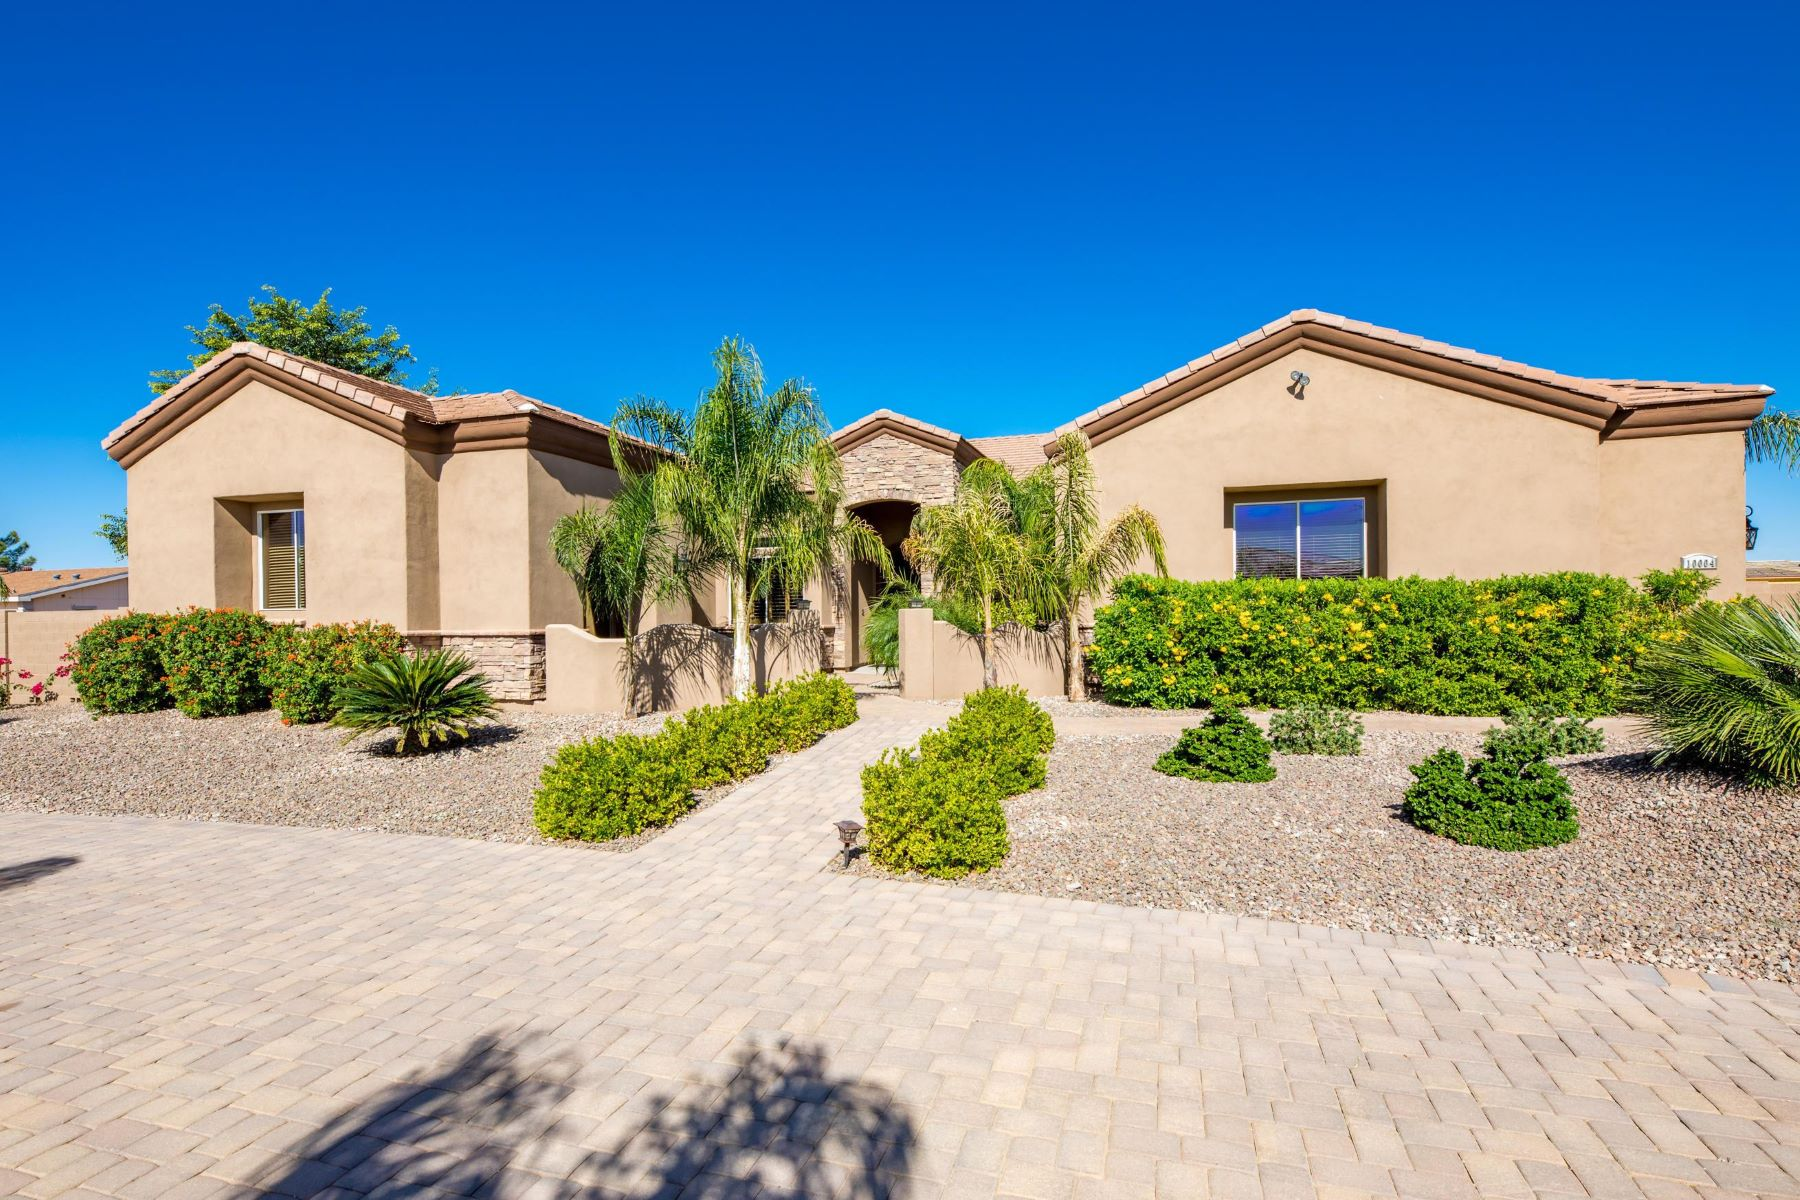 Single Family Homes por un Venta en North Peoria Entertainer's Delight! 10004 W Mariposa Grande Peoria, Arizona 85383 Estados Unidos